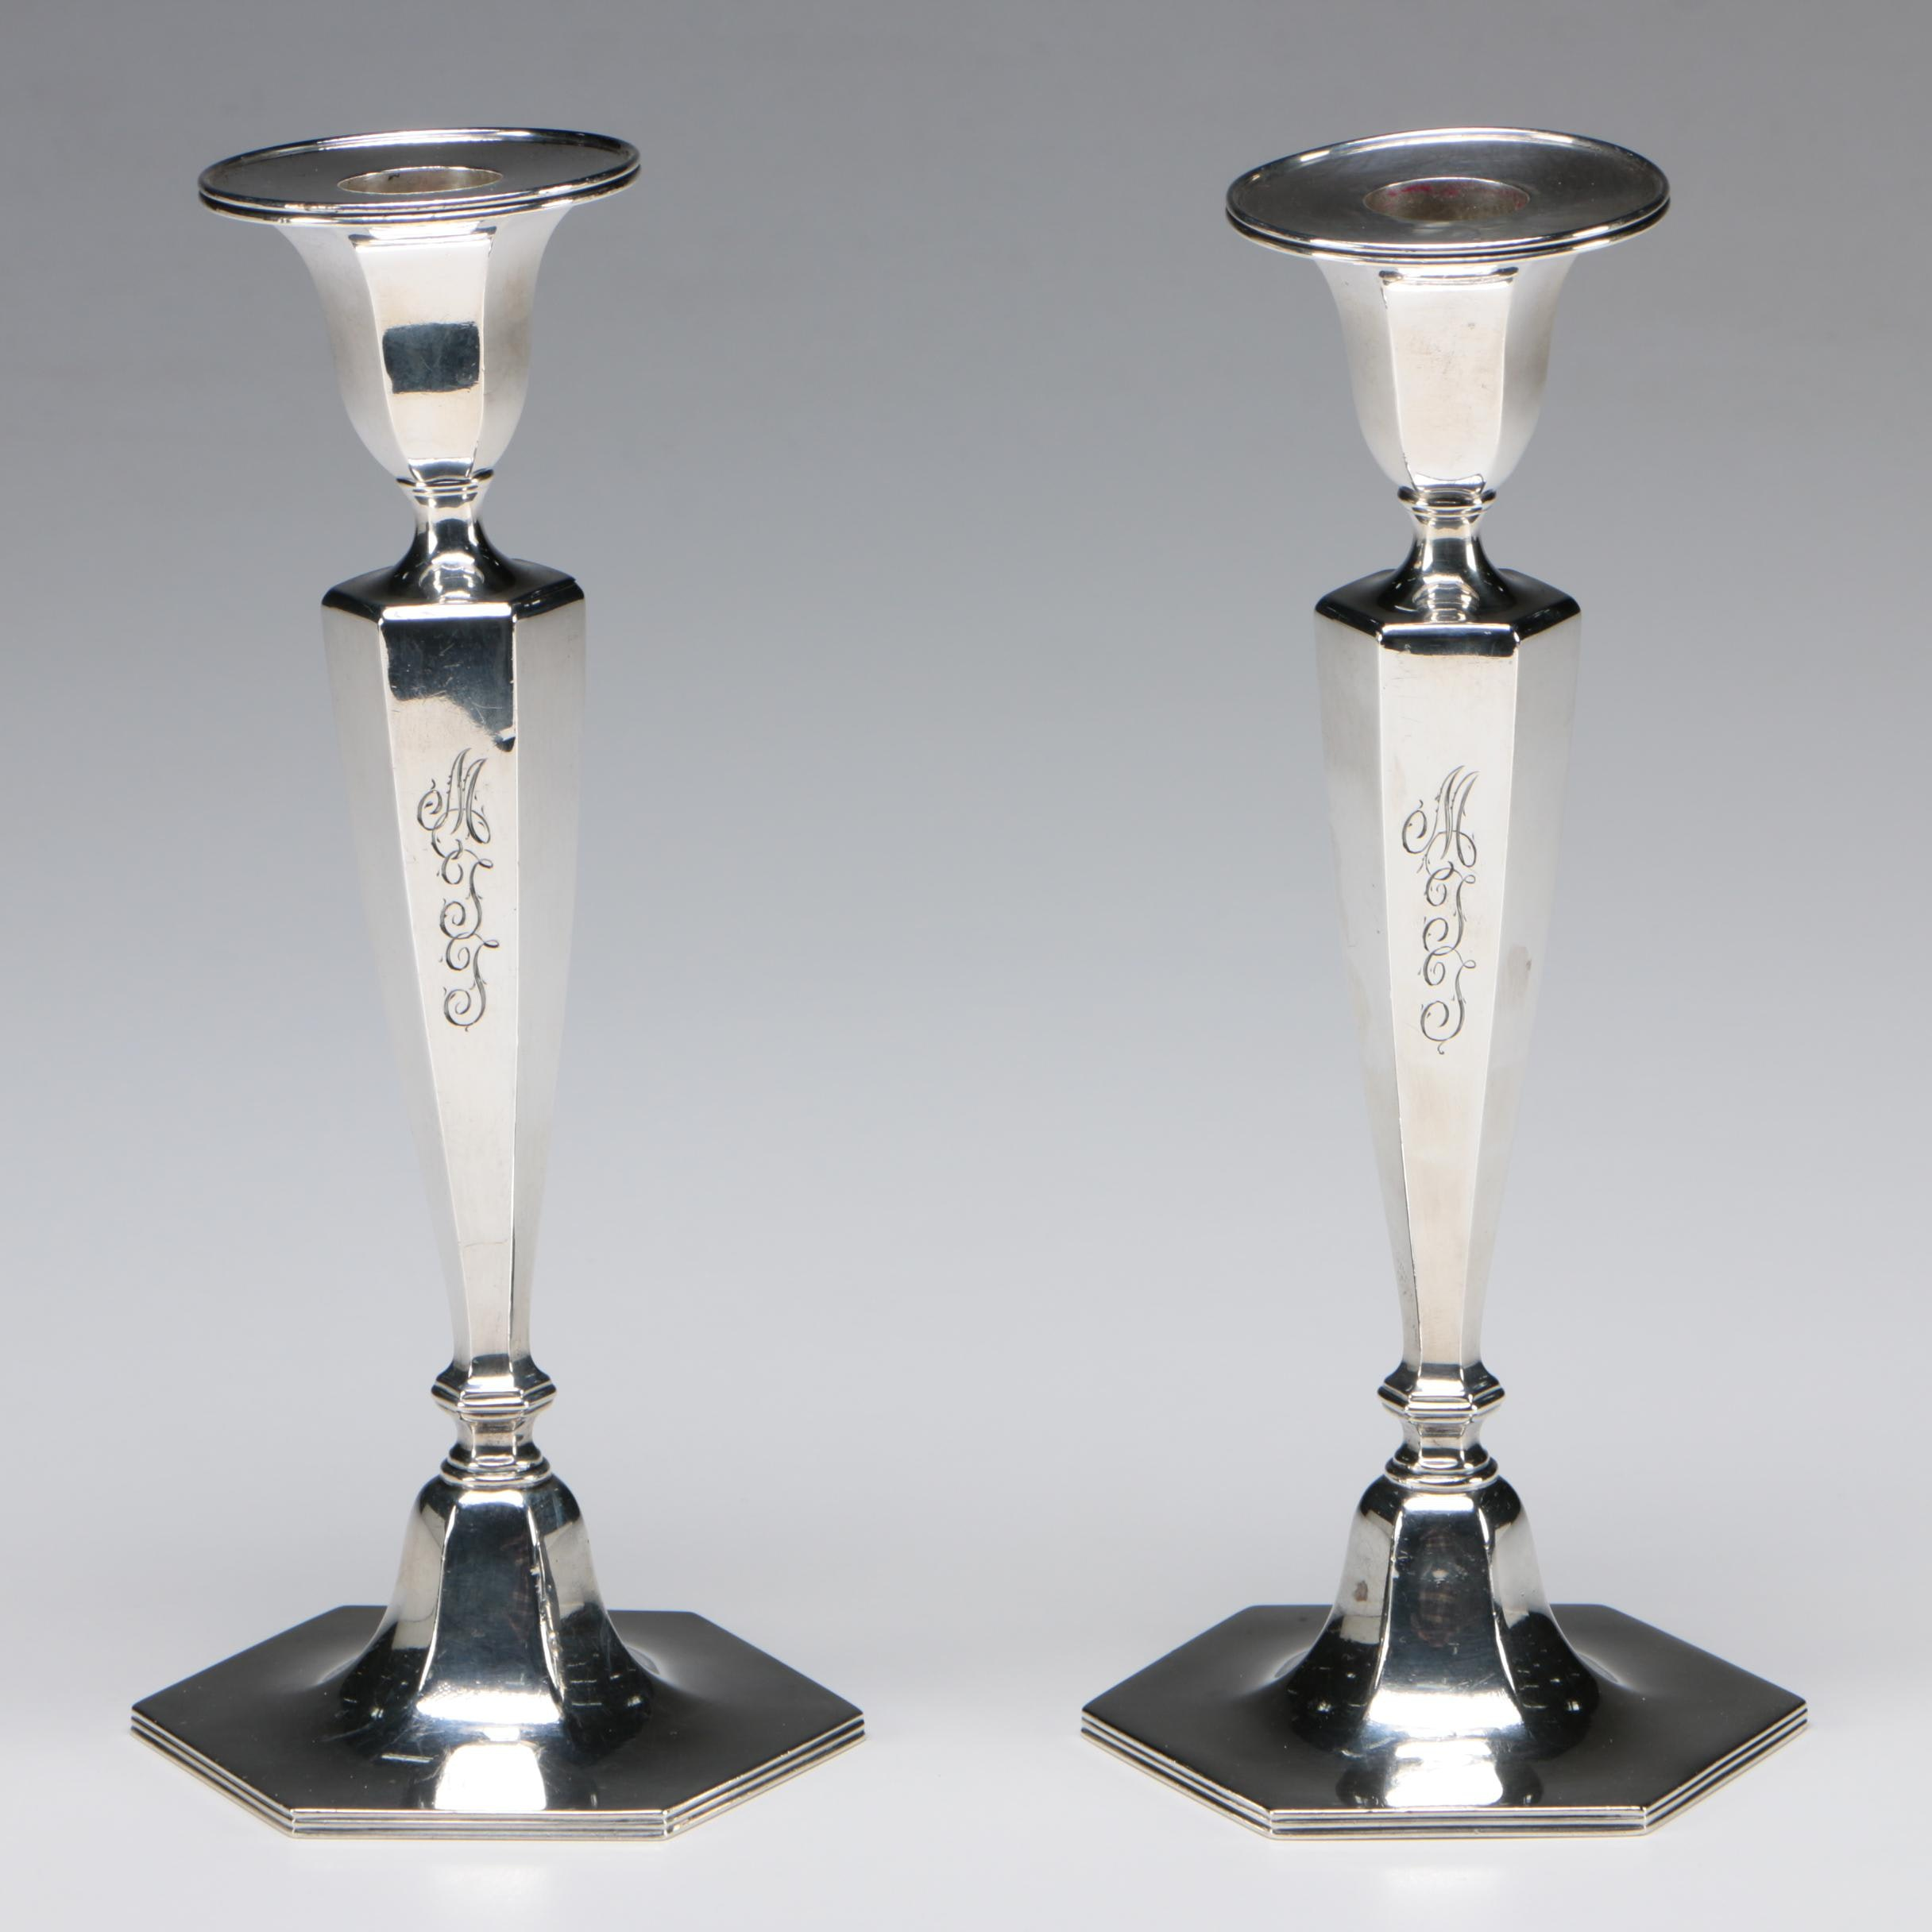 Tiffany & Co. Weighted Sterling Silver Candlesticks, 1906